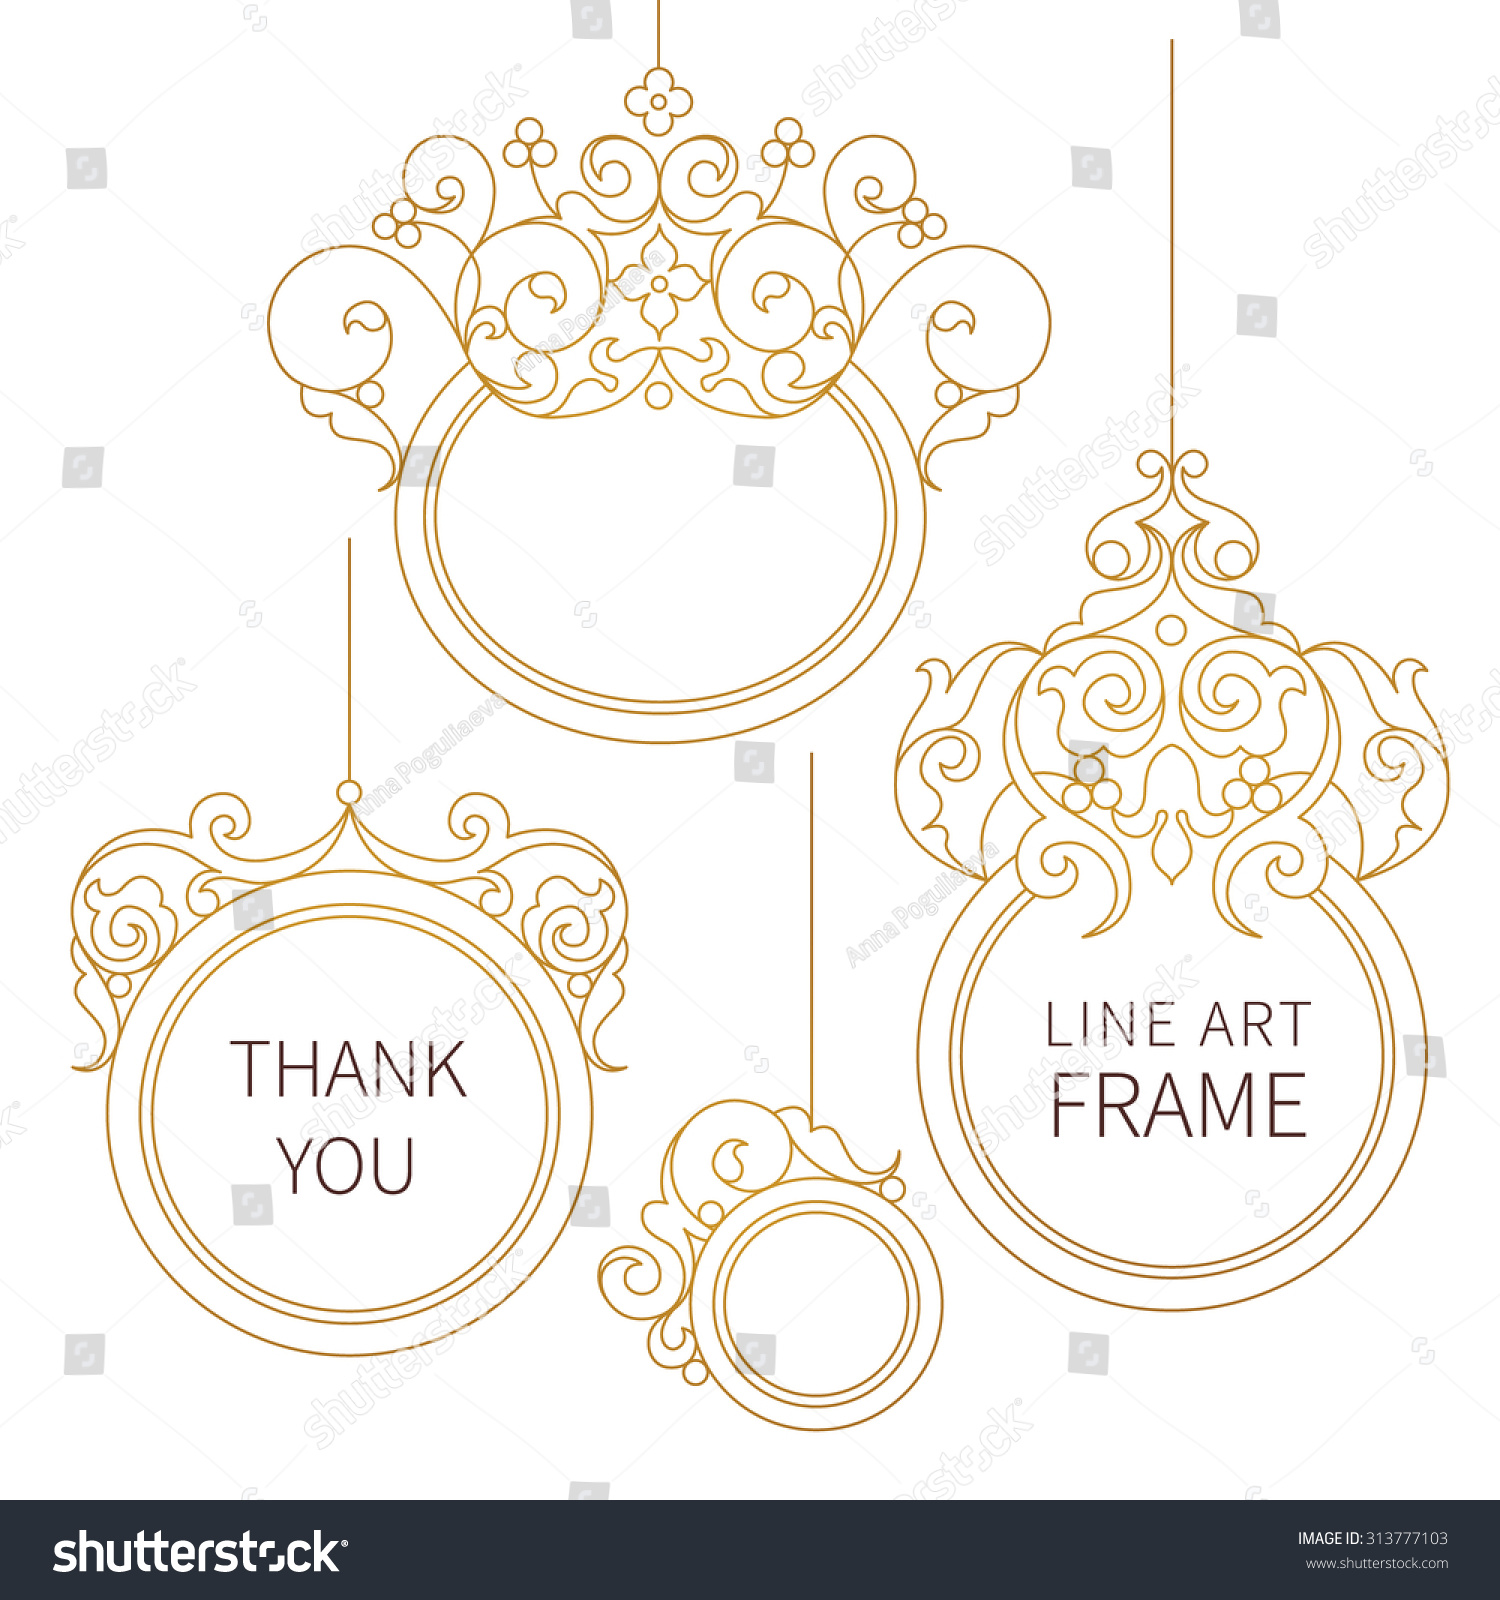 Line Art Thank You : Vector decorative line art frames for design template